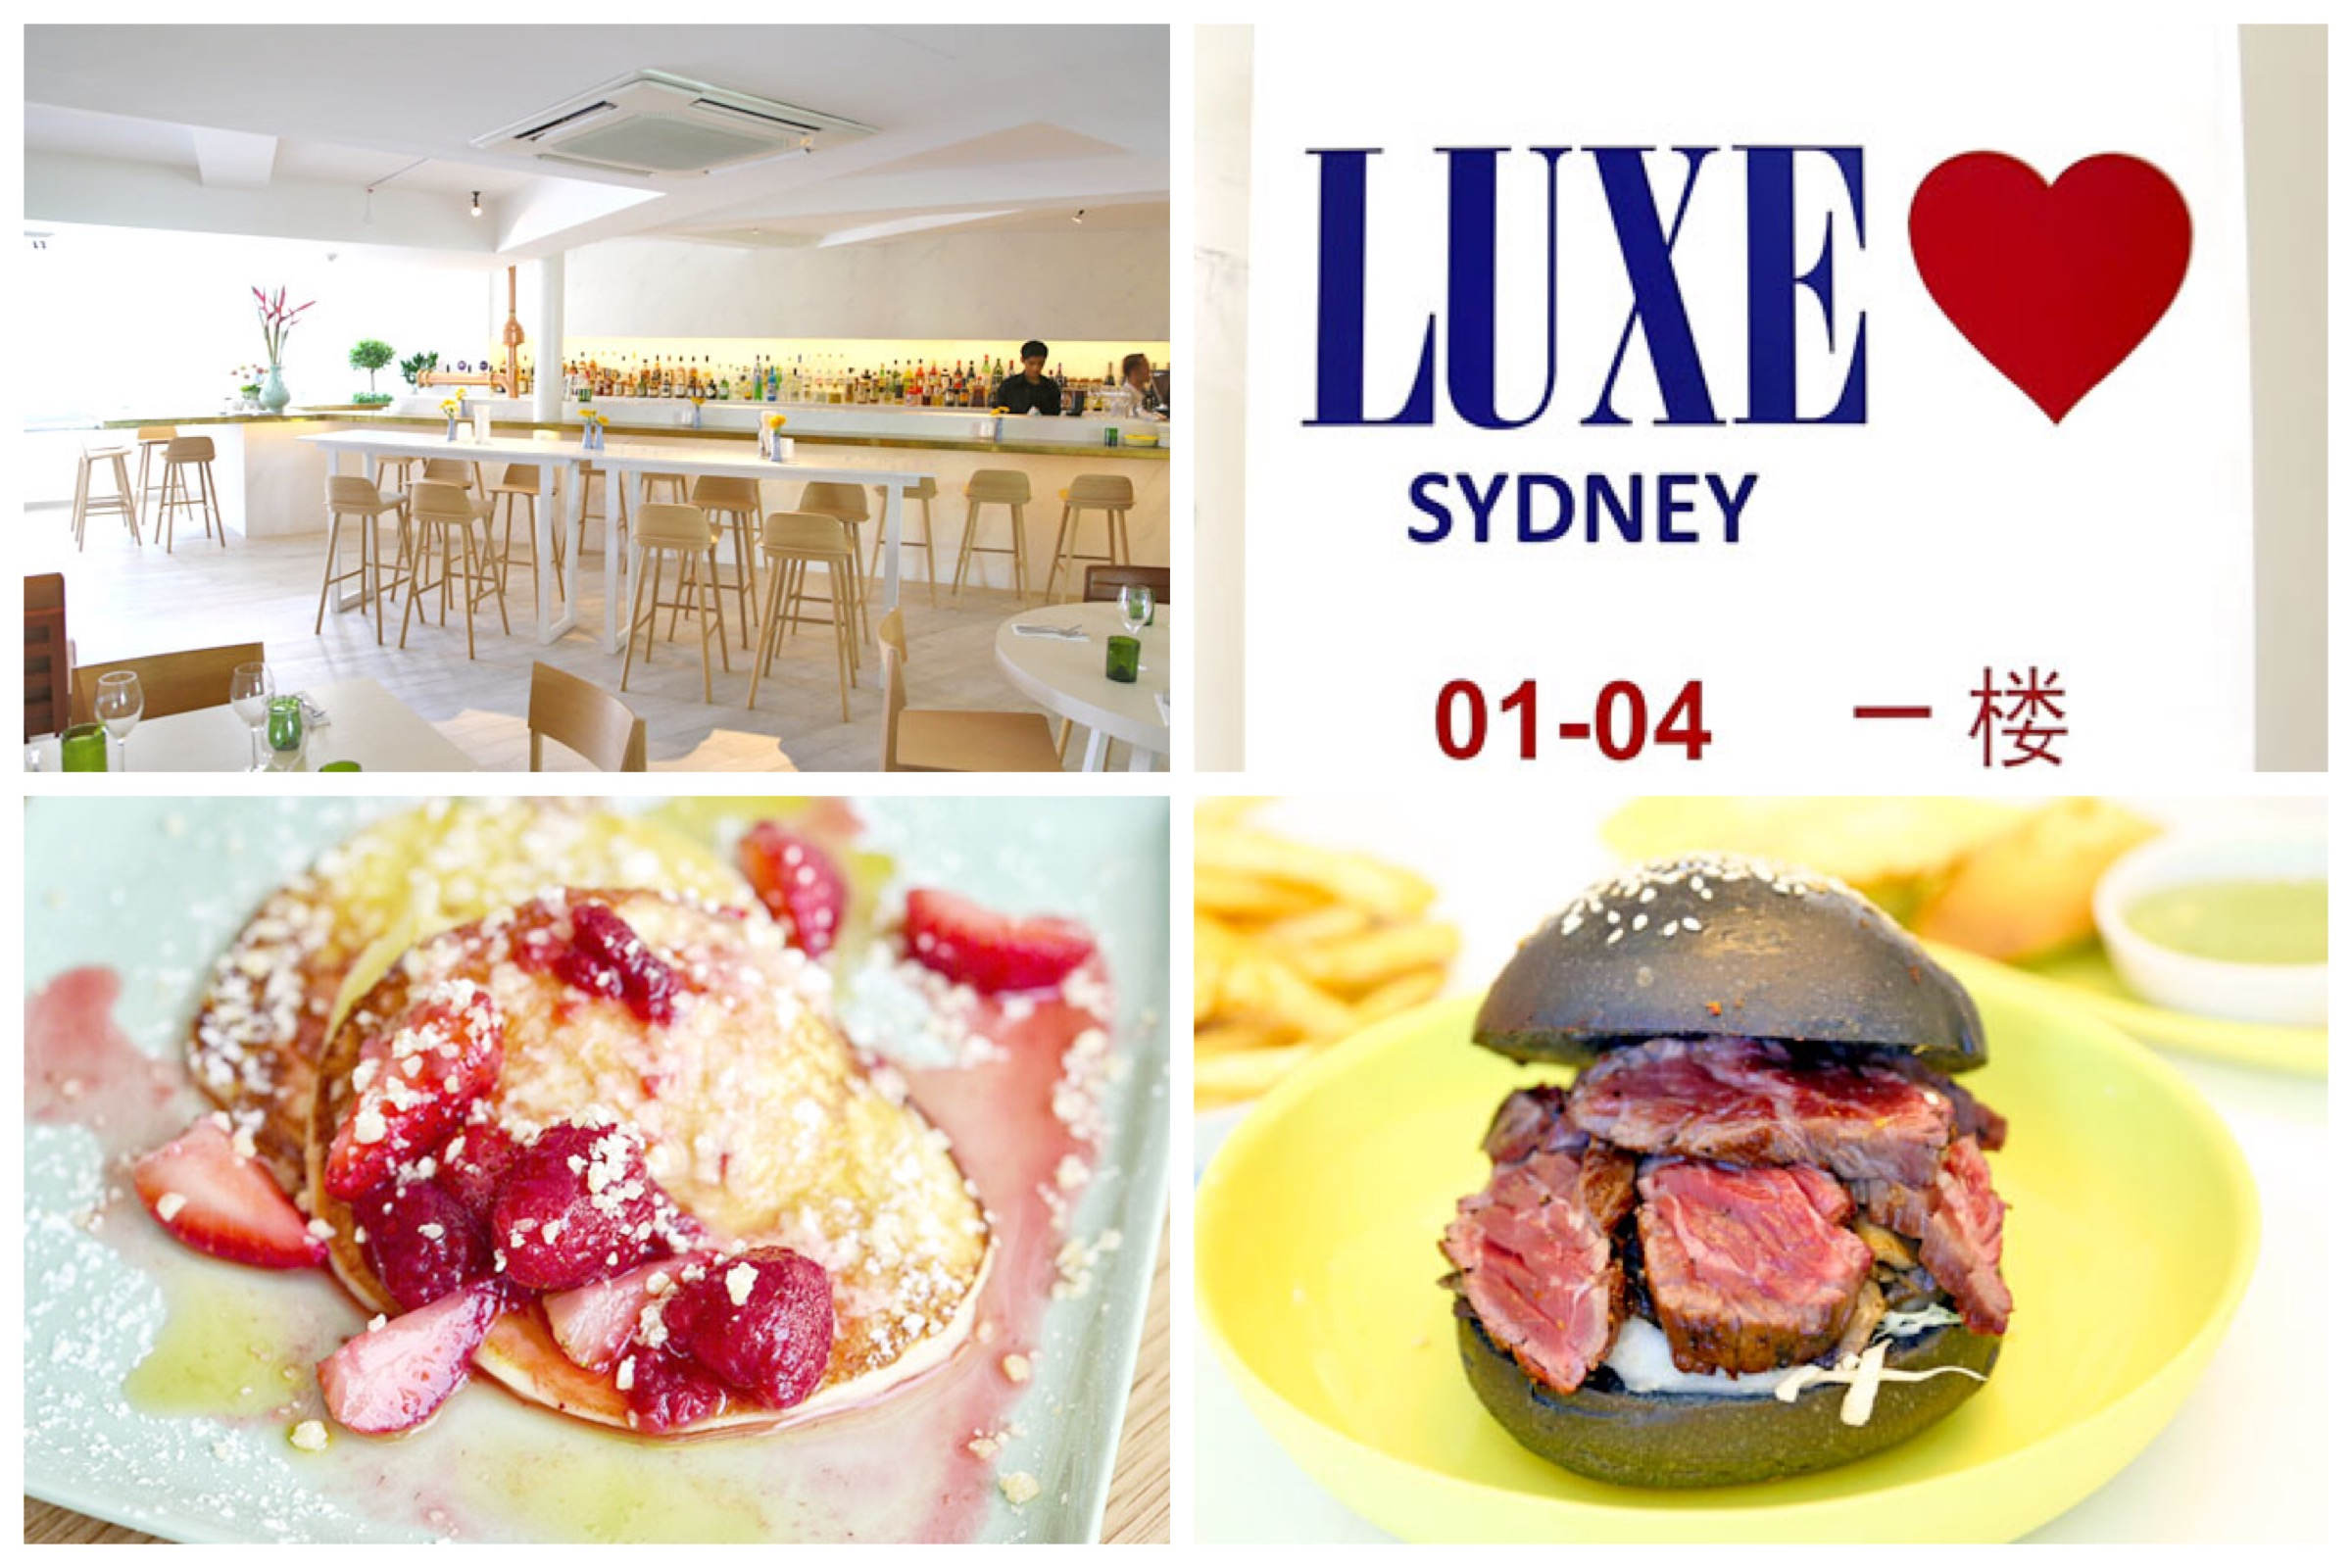 [Closed] Luxe – Australian Style Café At Keong Siak Has Ended Operations